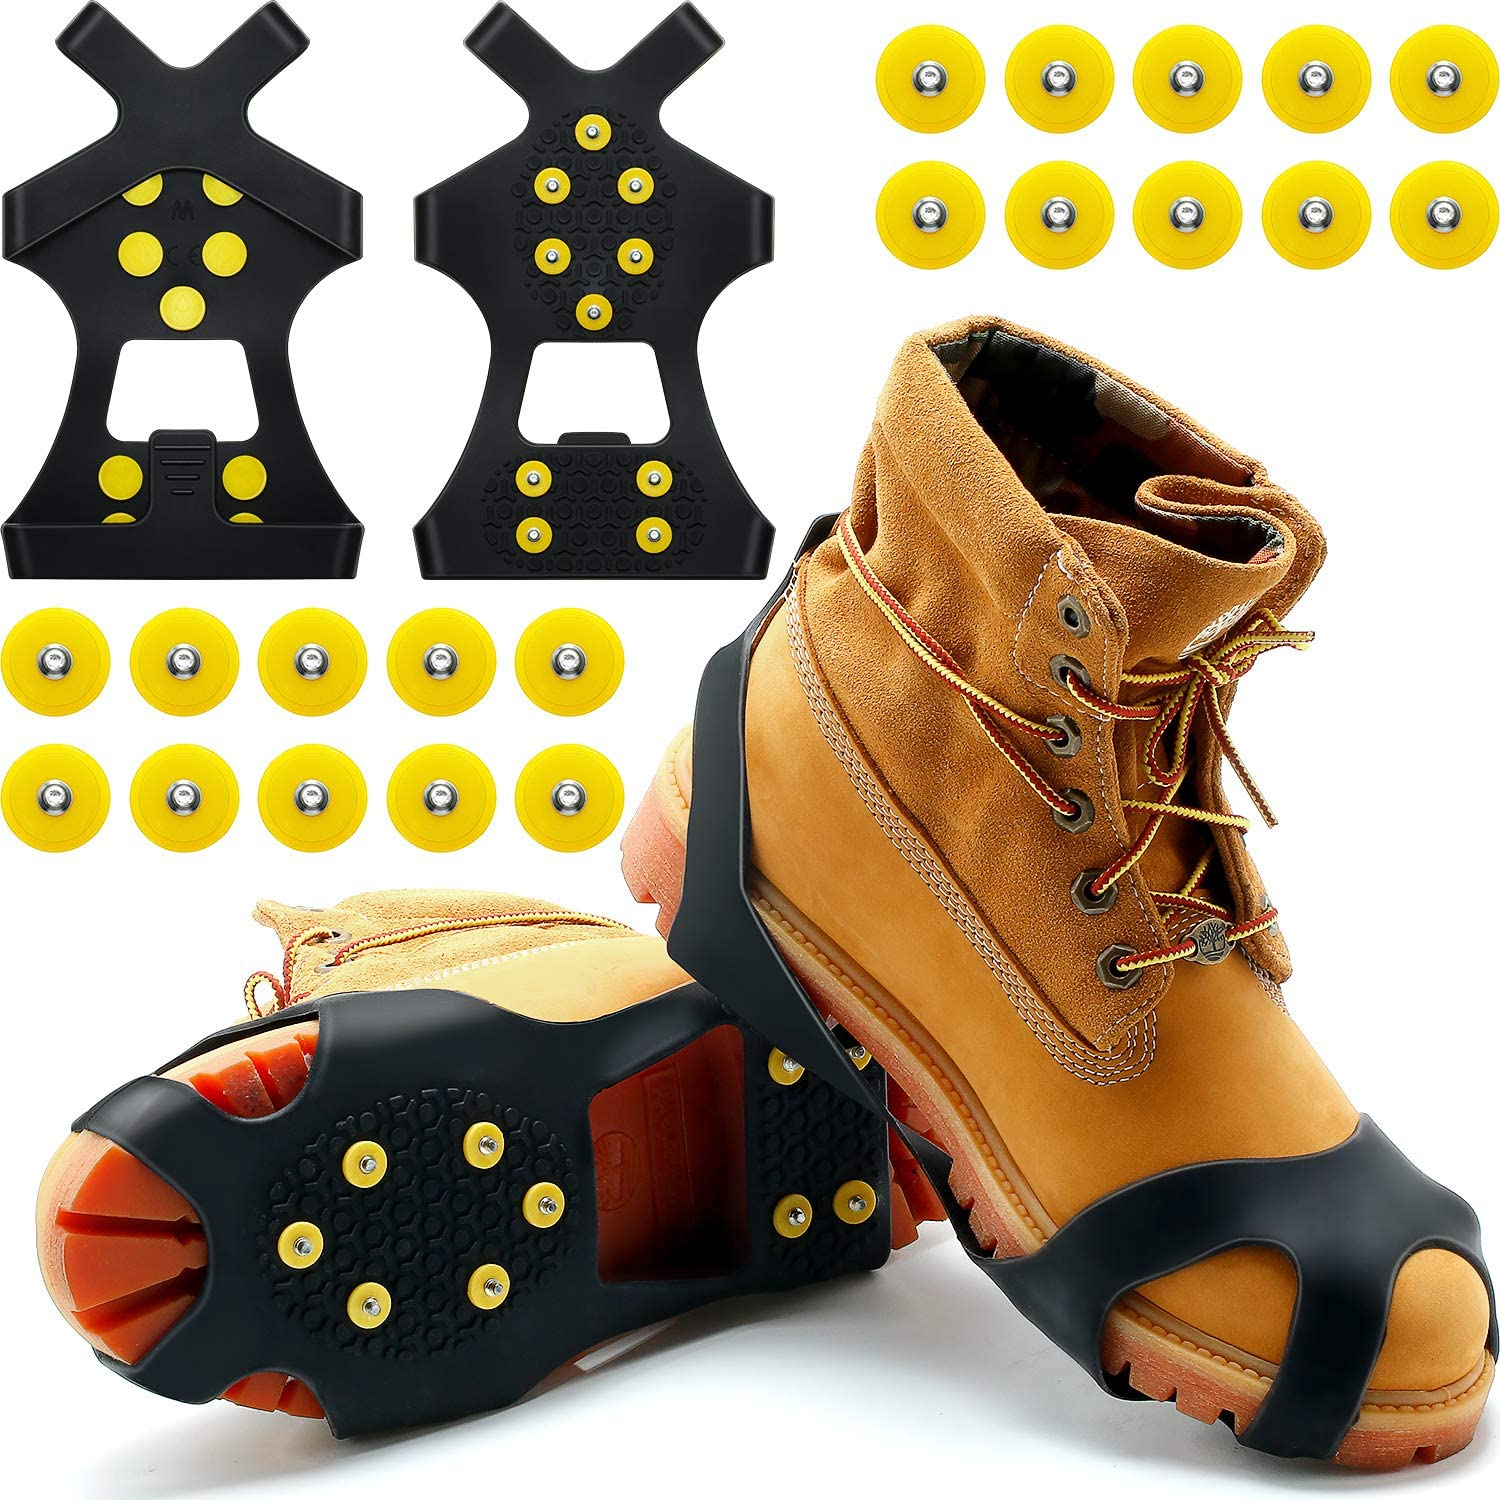 SATINIOR Ice Cleats Snow Grips Boot Traction Cleat Footwear Anti Slip 10 Steel Studs